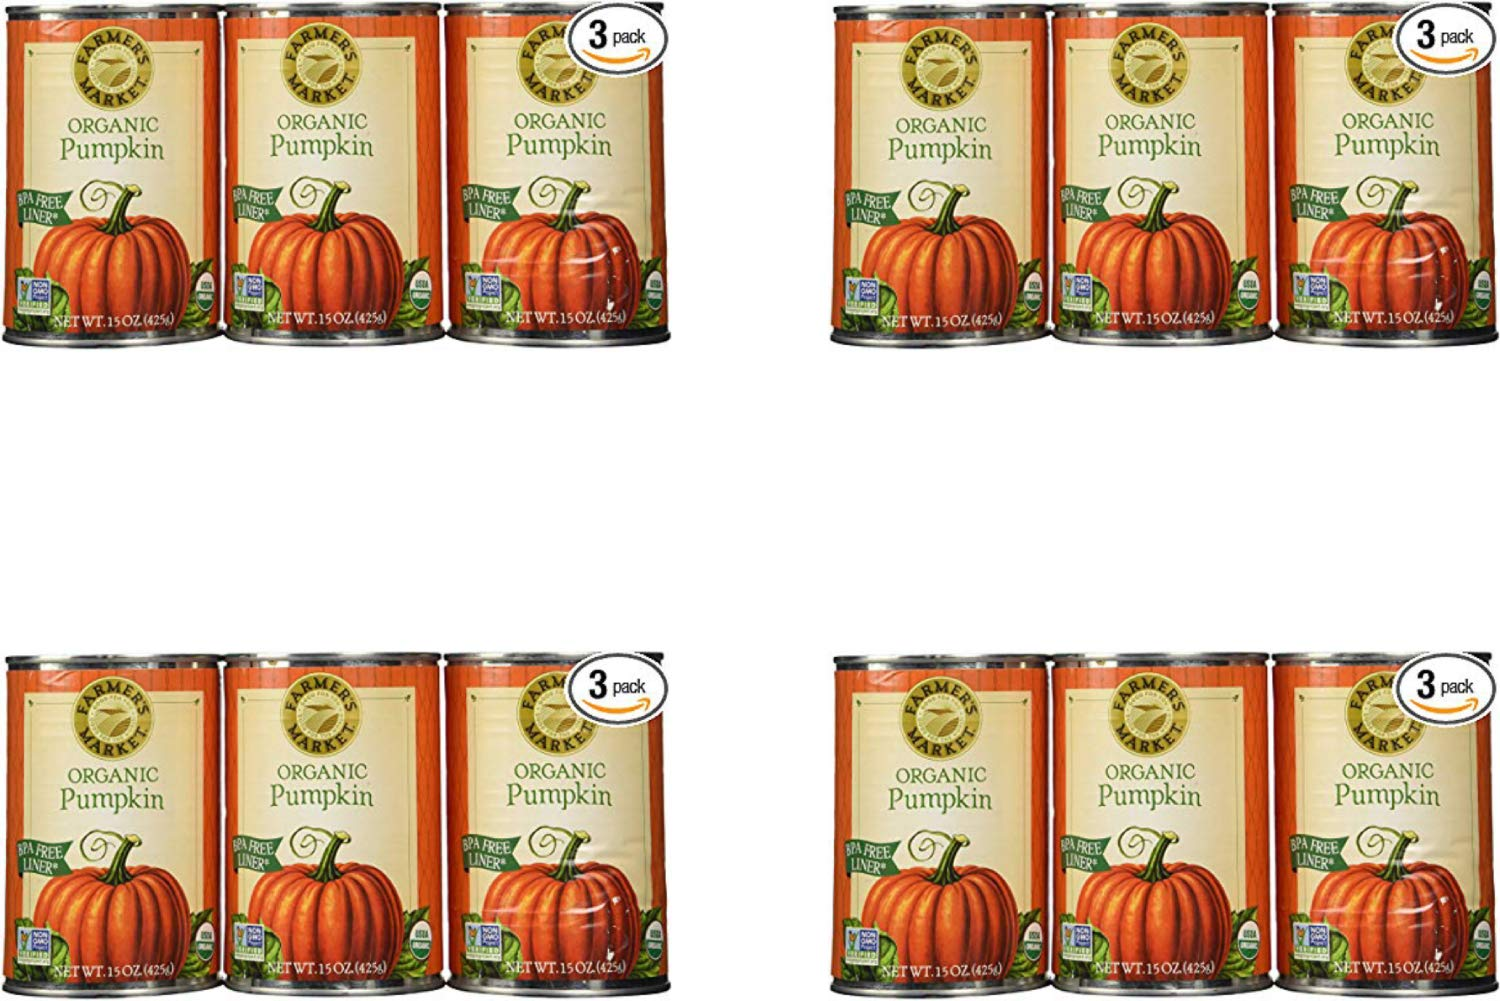 Farmers Market Pumpkin Puree 100% Organic 3 Count-15oz (4 Pack)